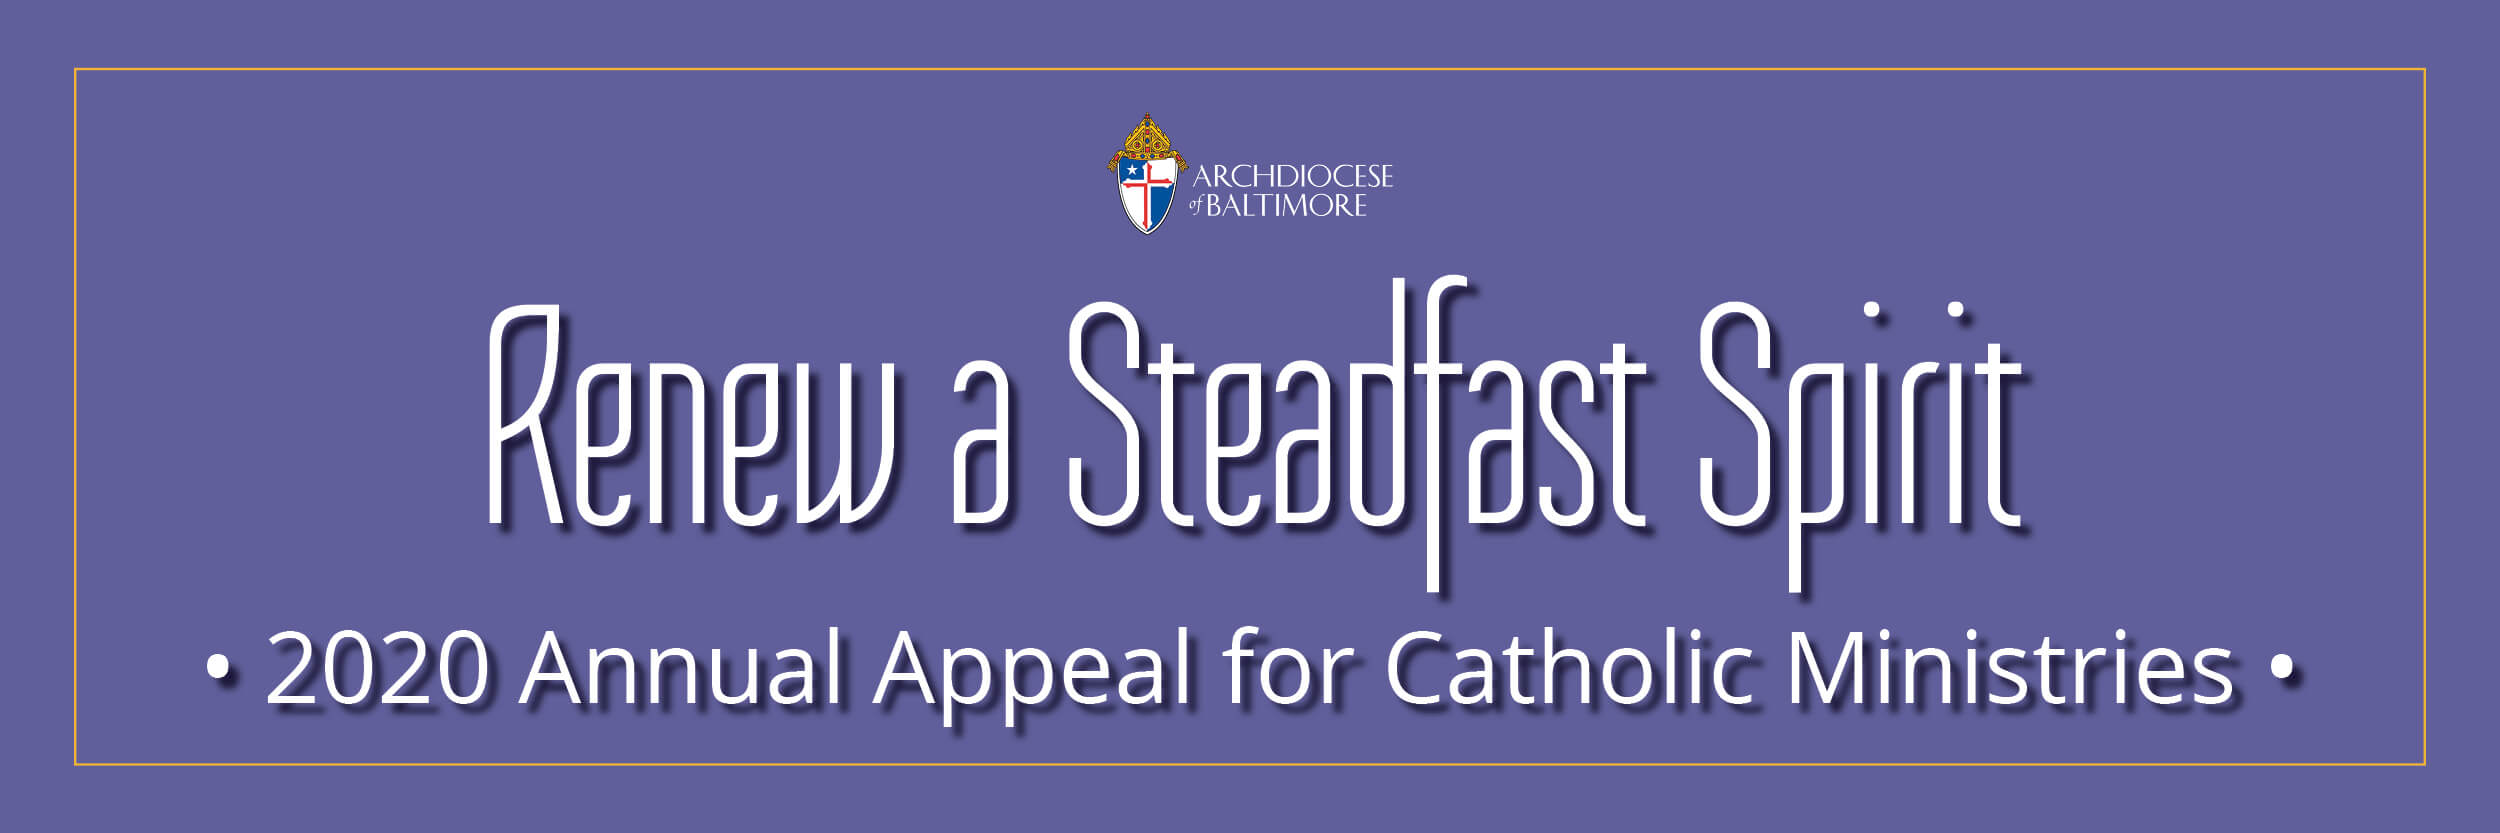 Annual Appeal for Catholic Ministries